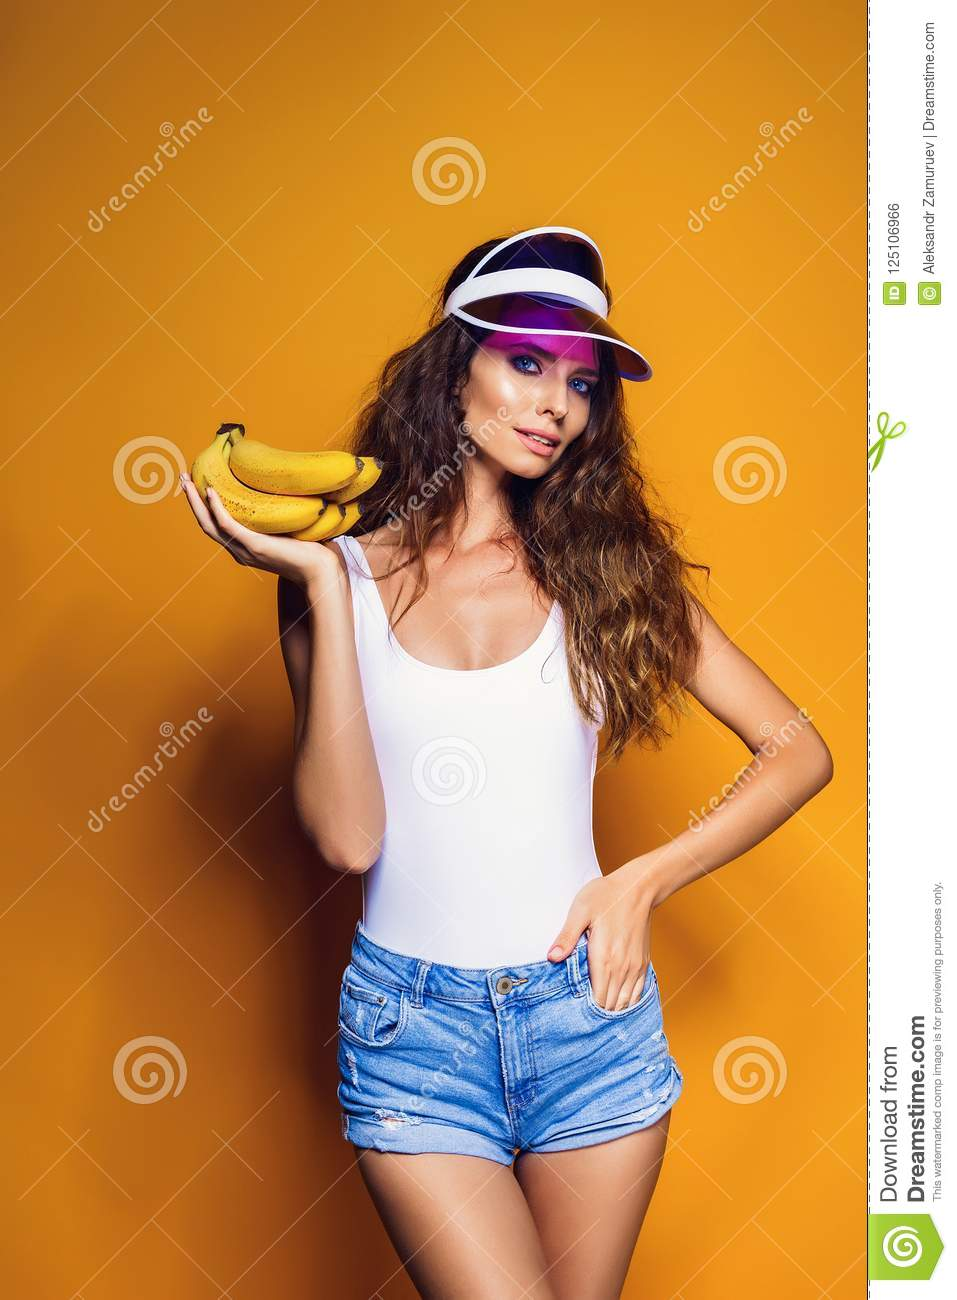 3fc3a52e13bc6 Woman in swimsuit and blue shorts holding banana and posing isolated over  yellow background